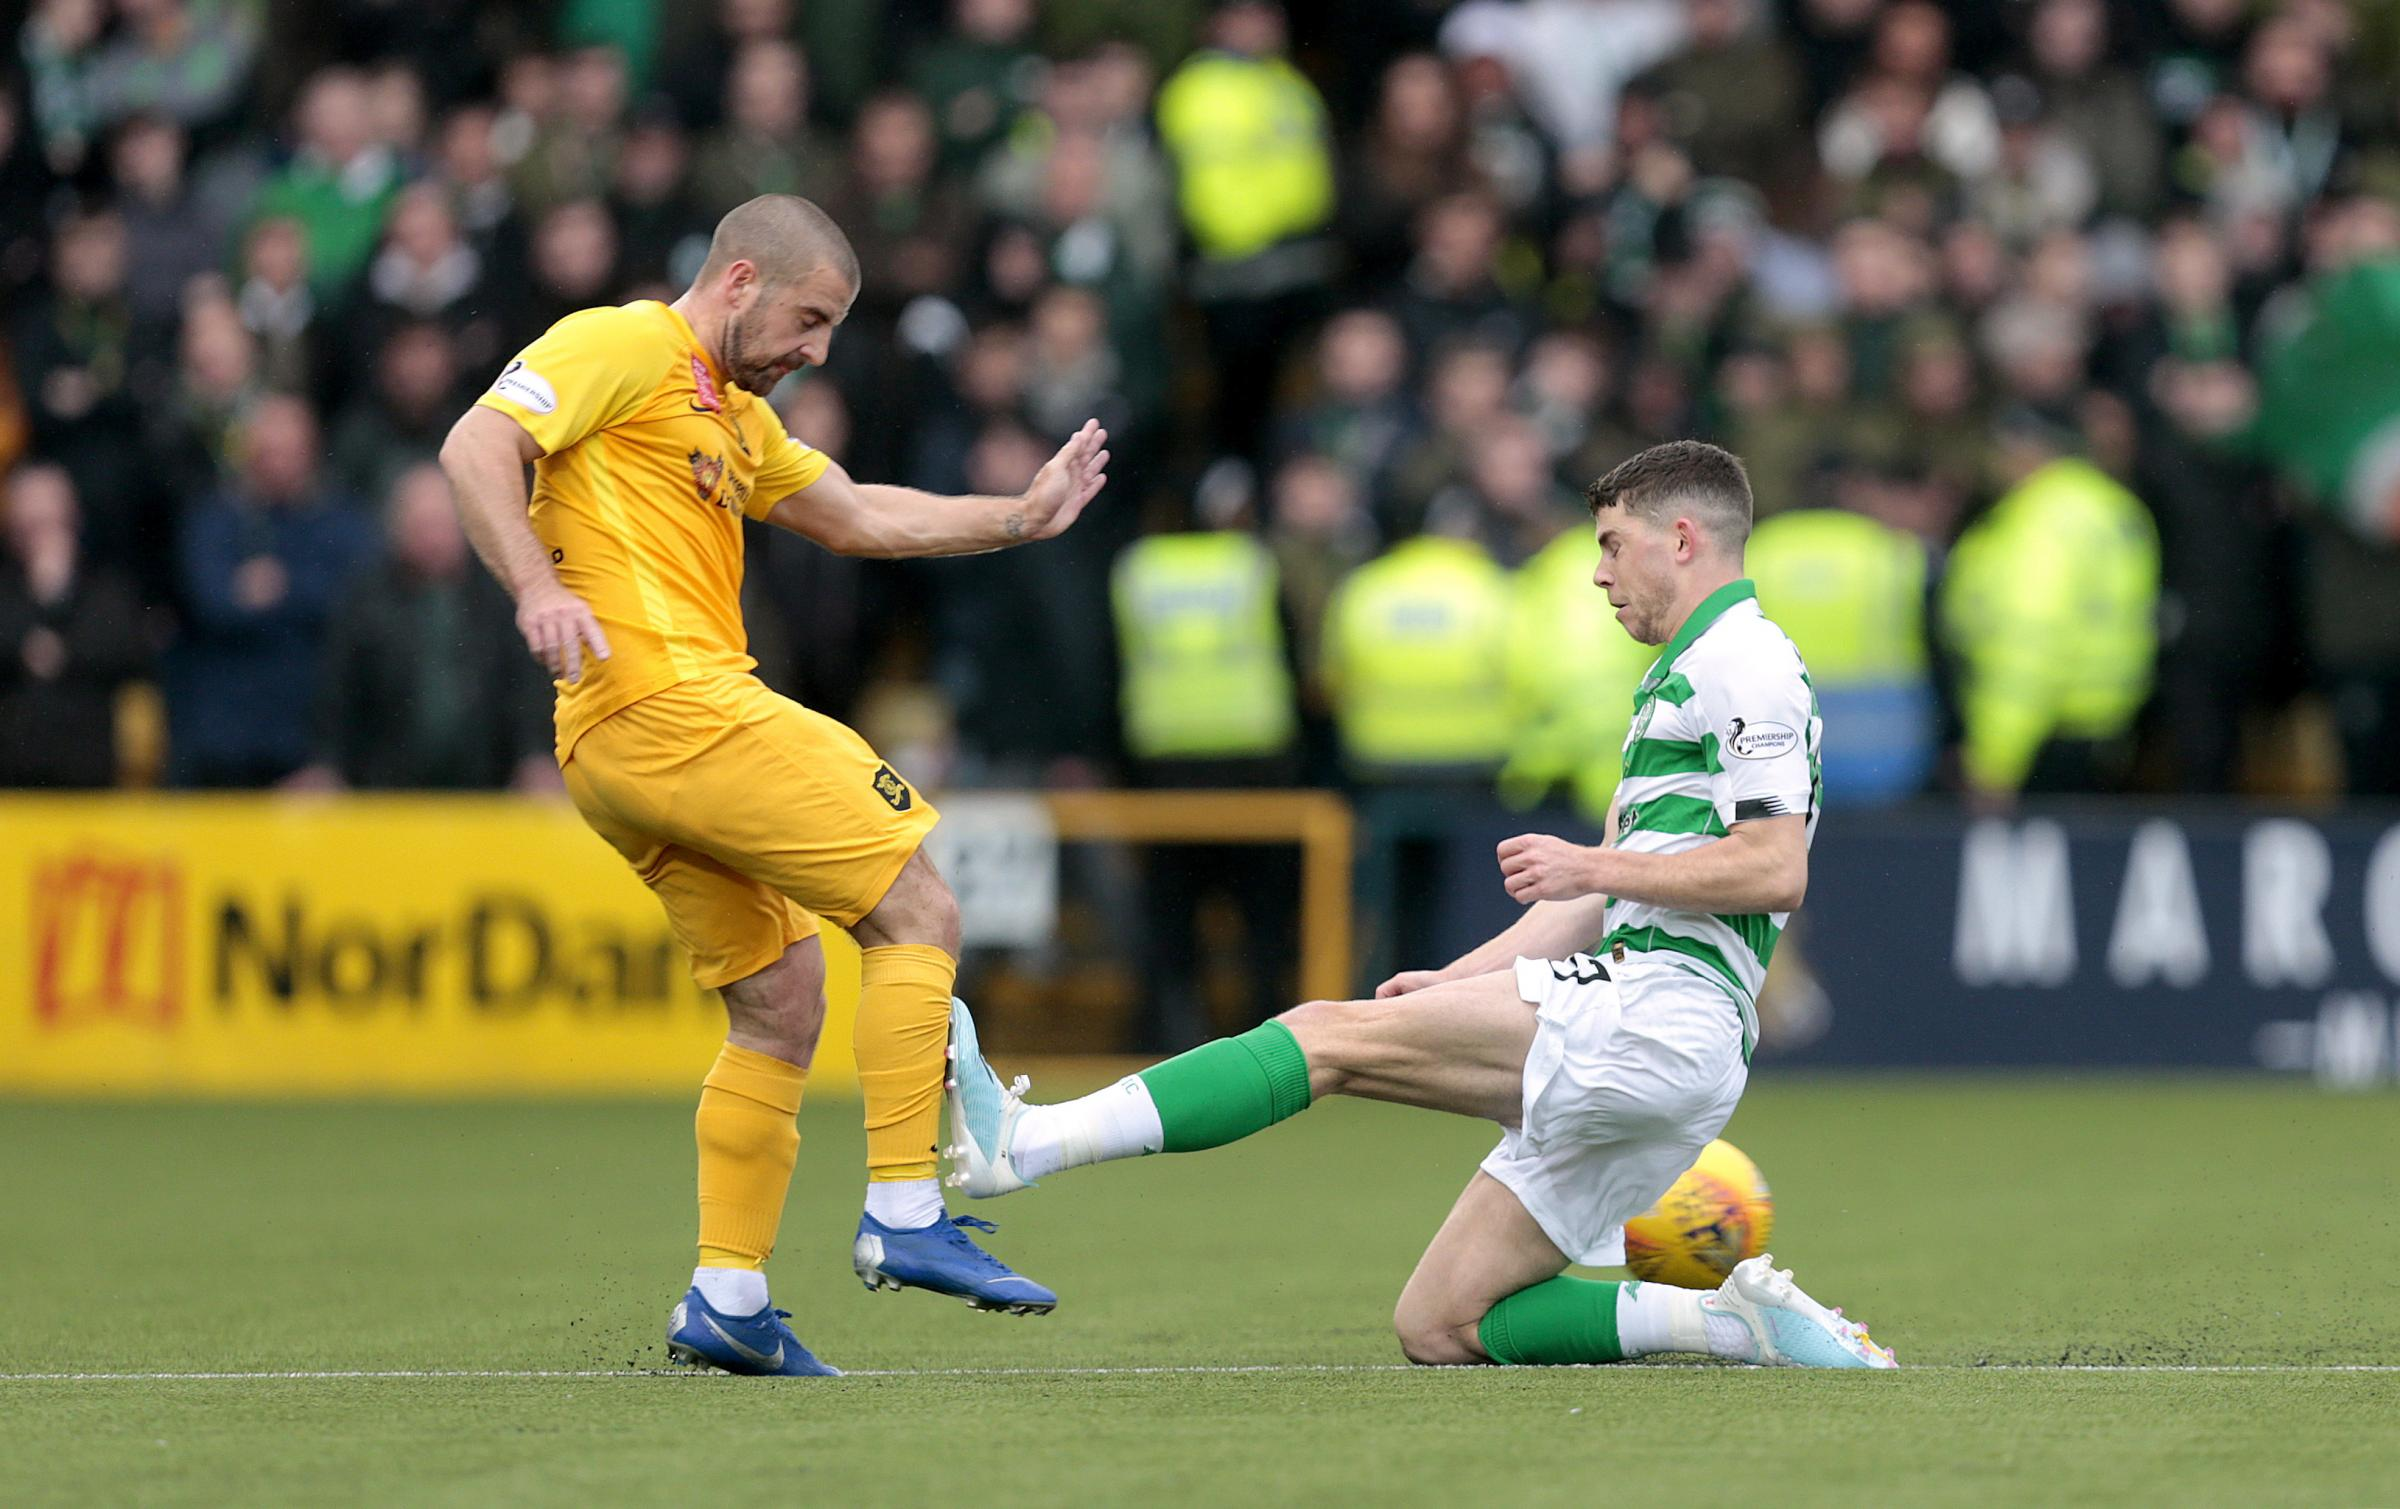 Gary Holt sympathises with Celtic's Ryan Christie over abuse received following Livingston red